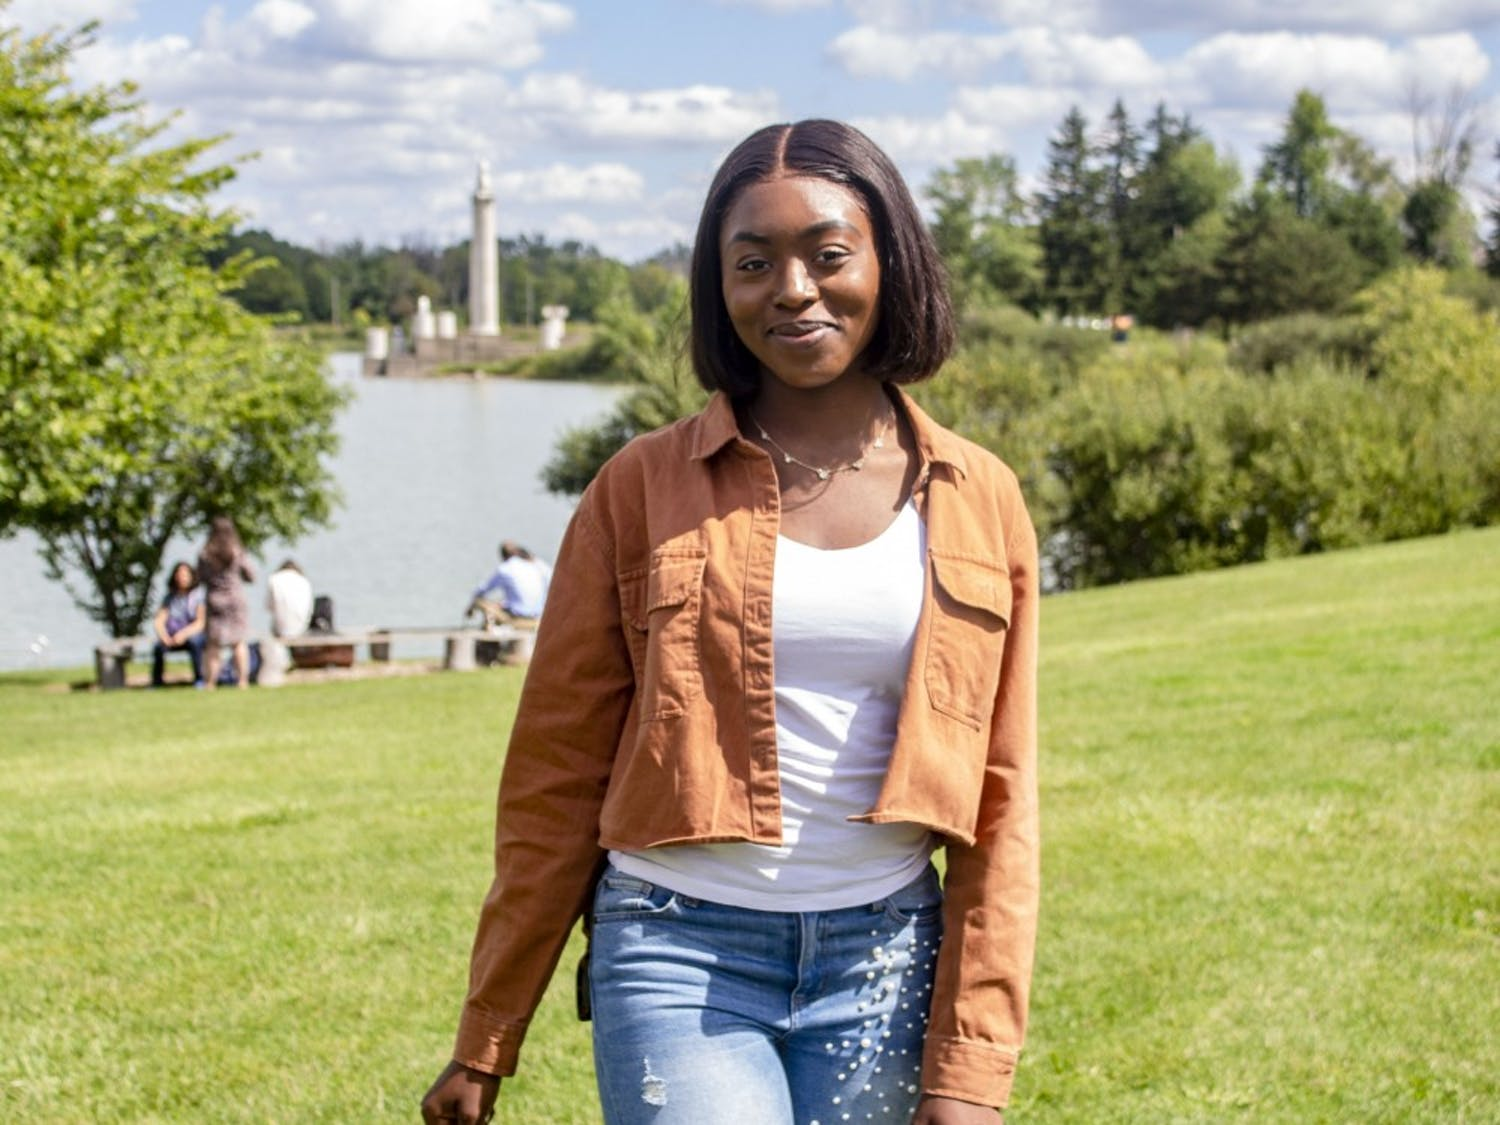 Florence Ayeni, senior health and human services major and BSU president, is a full-time entrepreneur and student leader who dedicates her time to helping others.